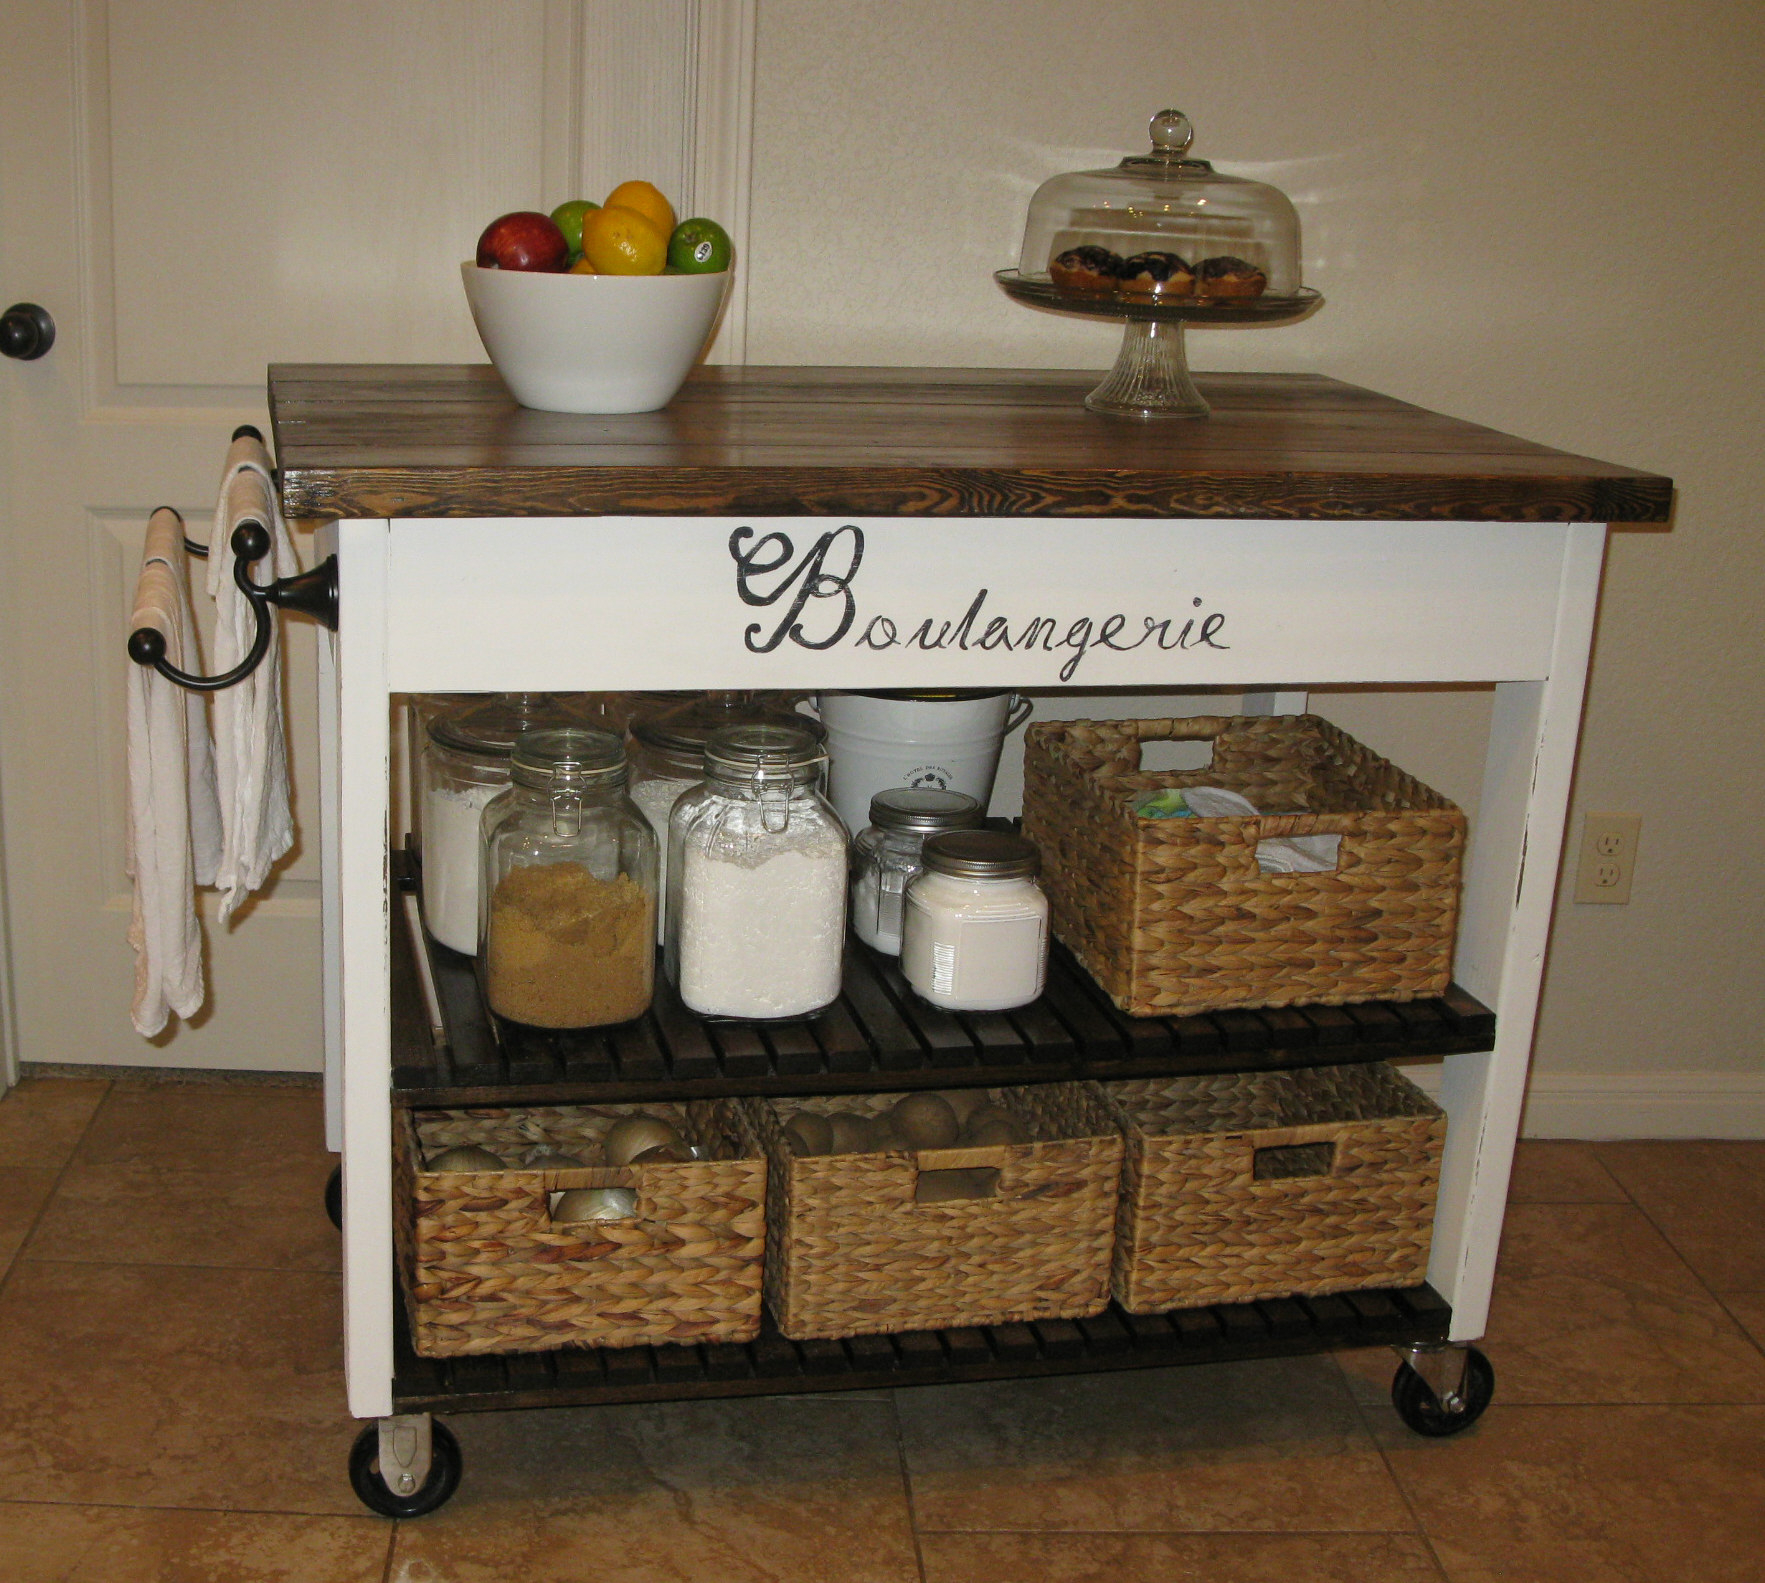 Superieur How To Make A Kitchen Cart